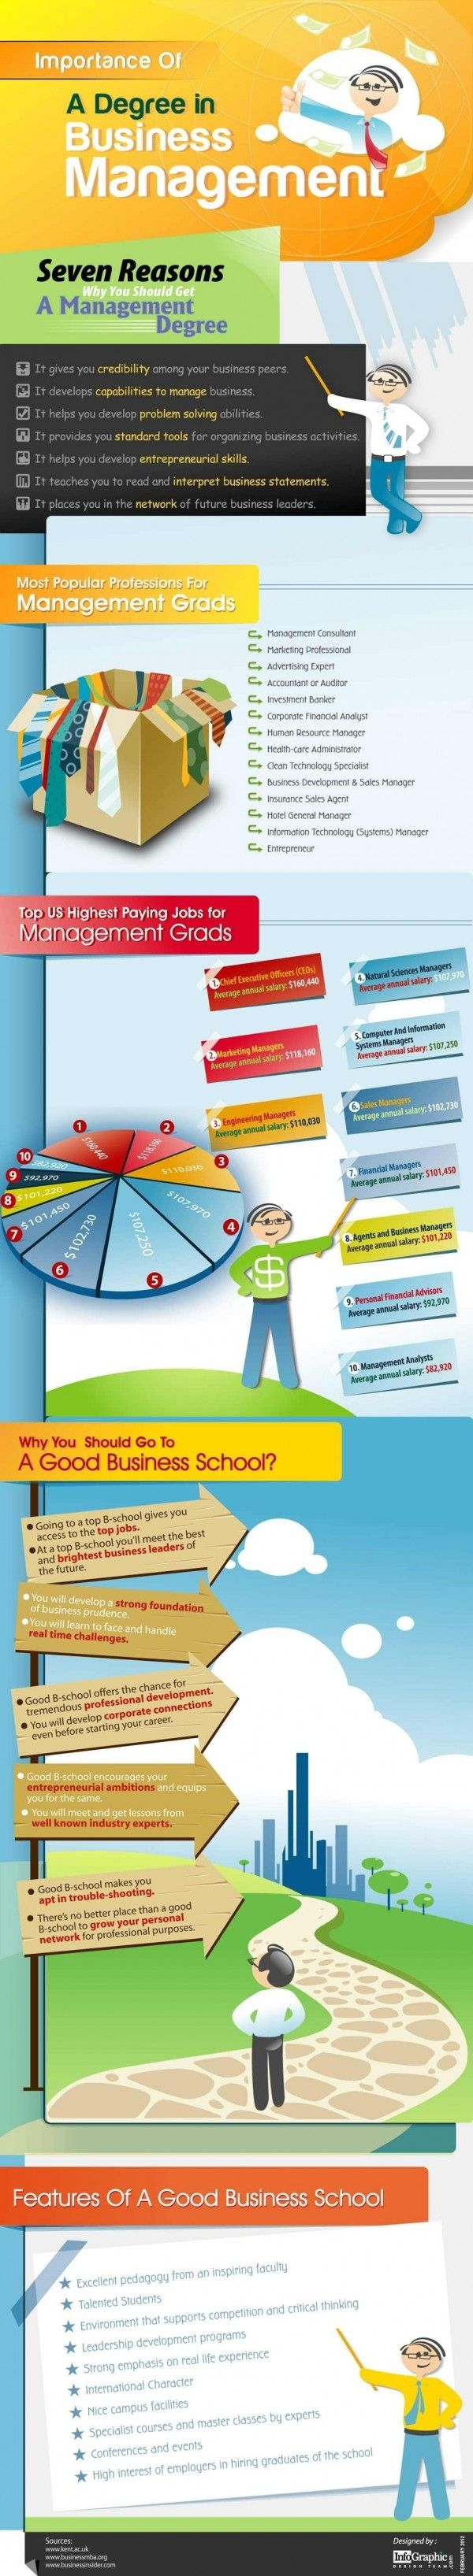 best images about career aspirations devil importance of business management degree as a wedding planner a business degree is crucial